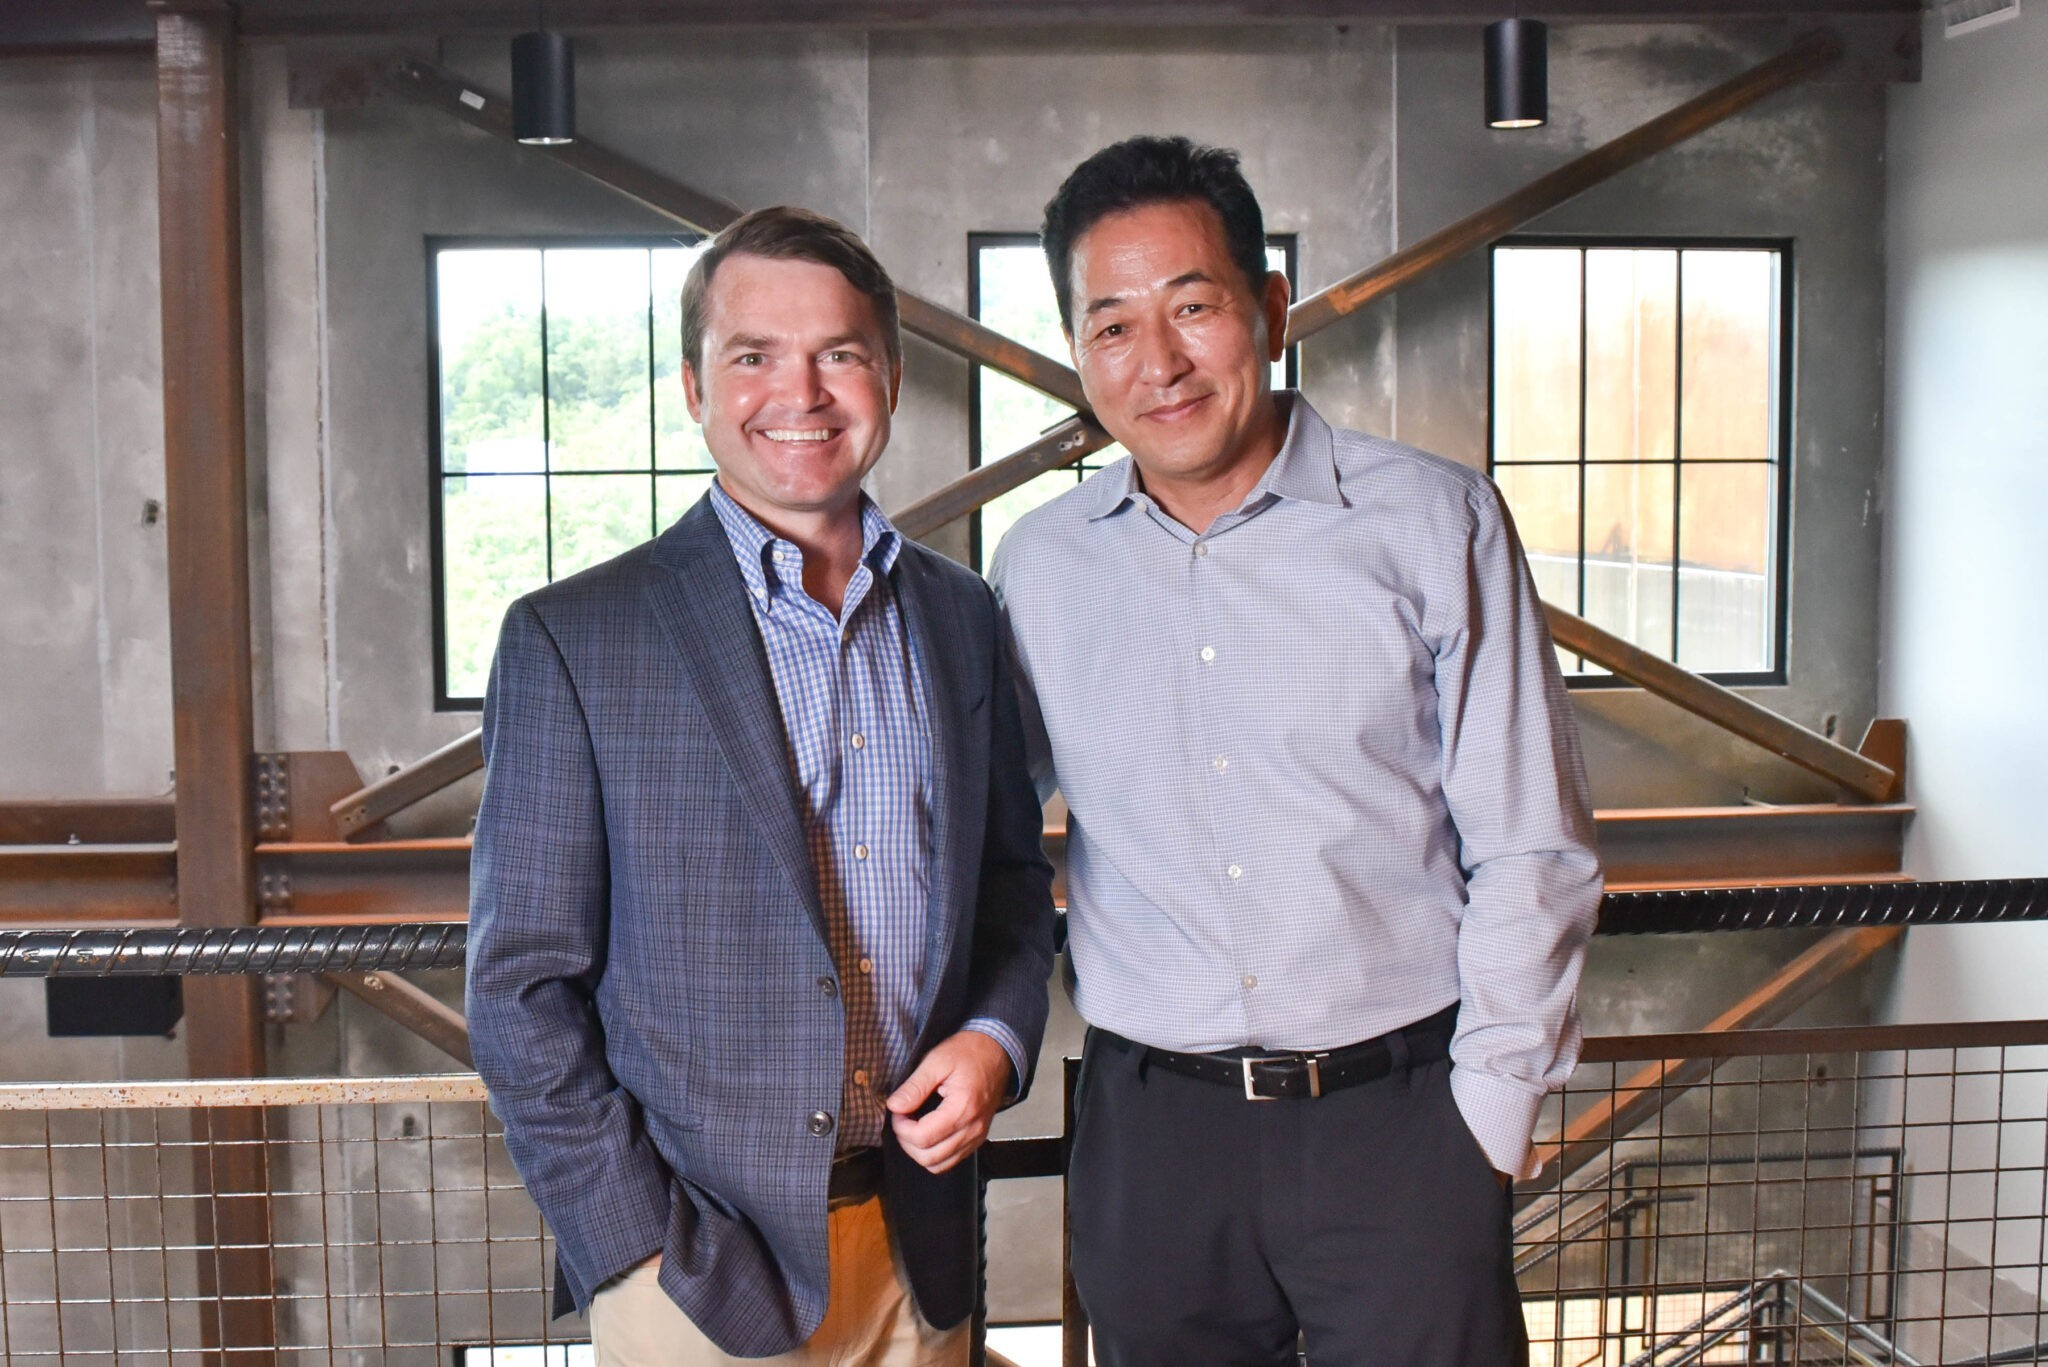 Woo K. 'David' Cheon (CEO) with Will Massey (COO) of NCI Inc.